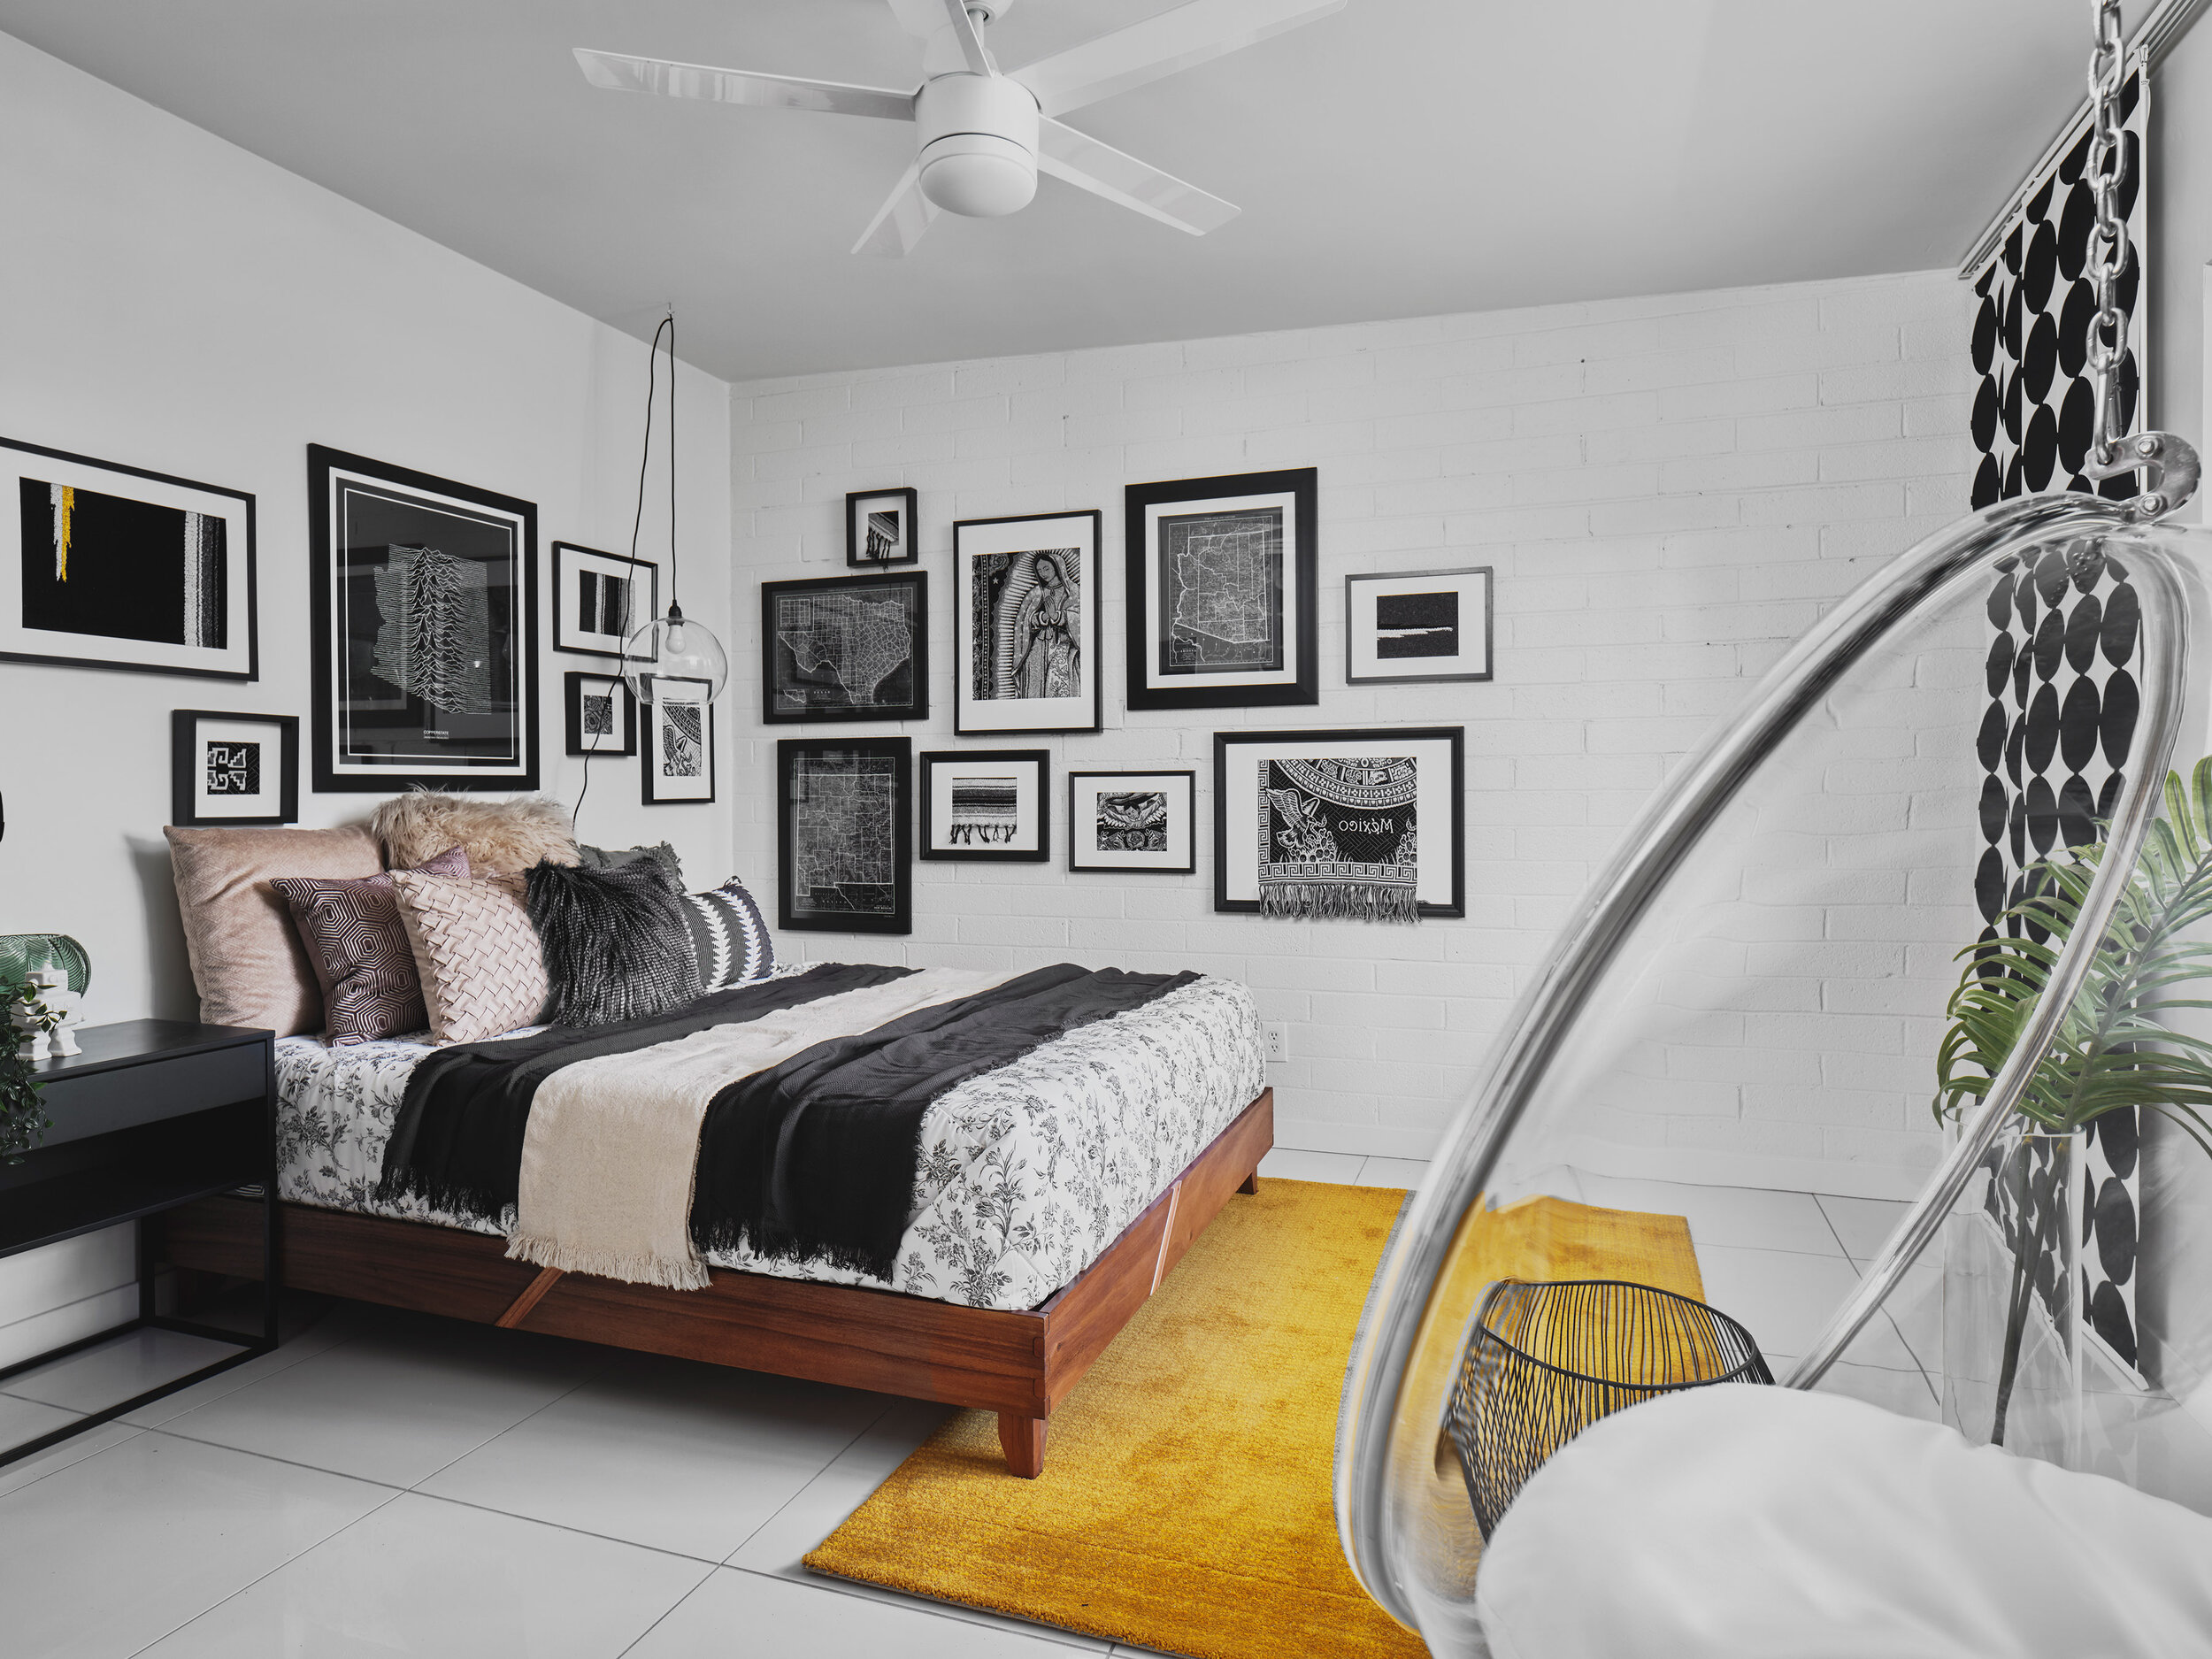 Tony Williams Eisenhower Airbnb bedroom two two.jpg